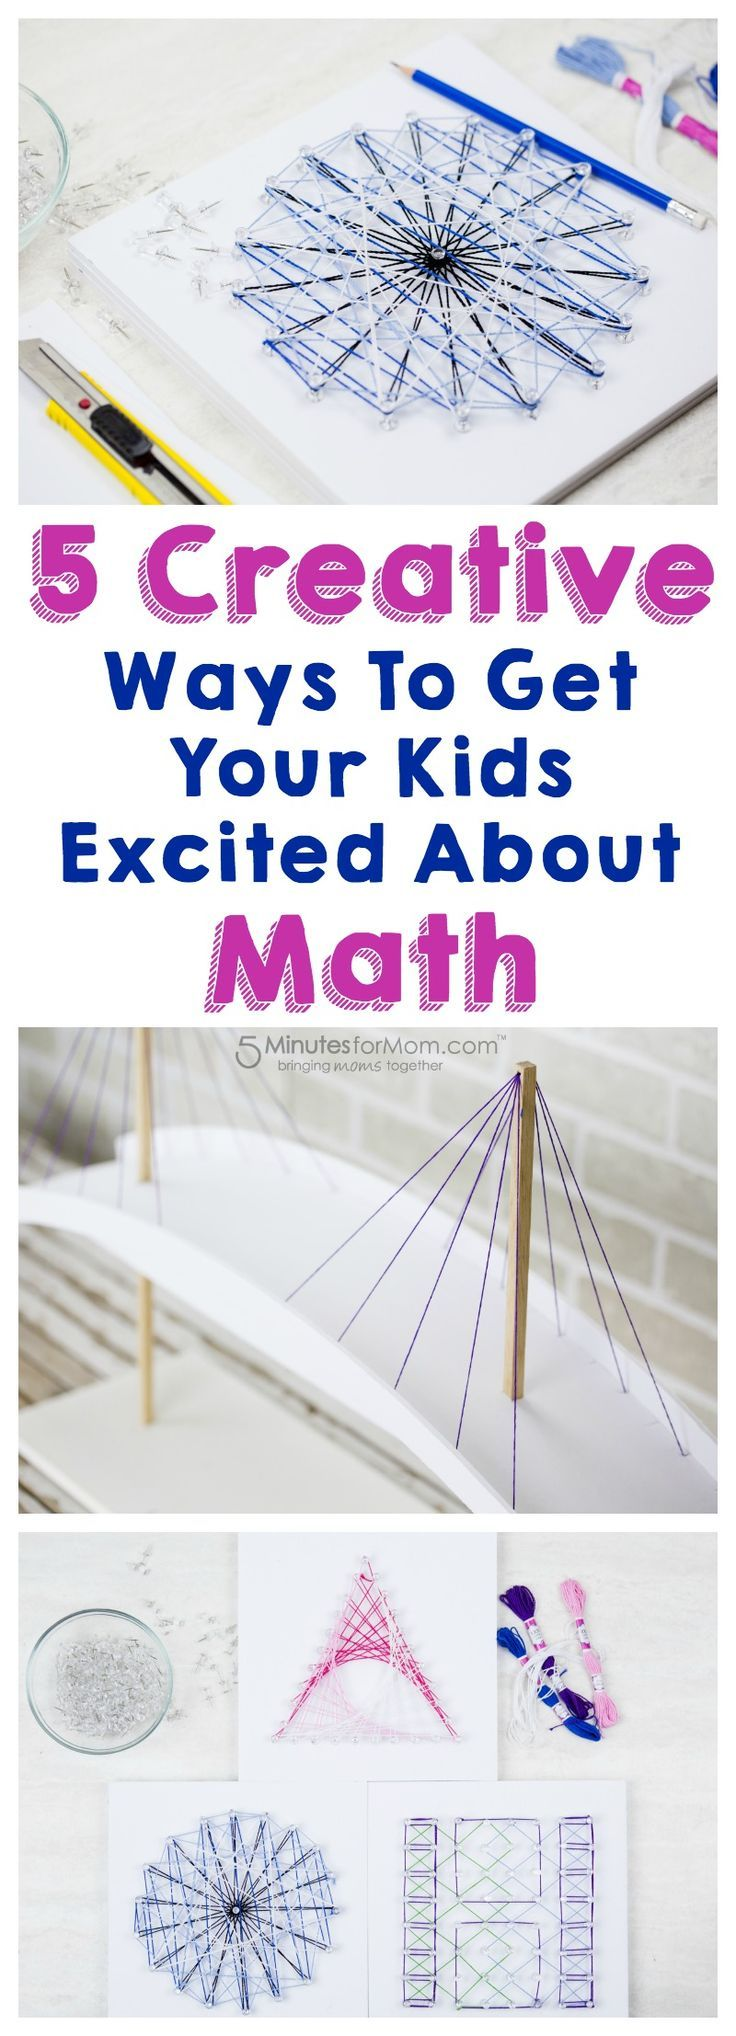 5 Creative Ways To Get Your Kids Excited About Math | Fun time ...